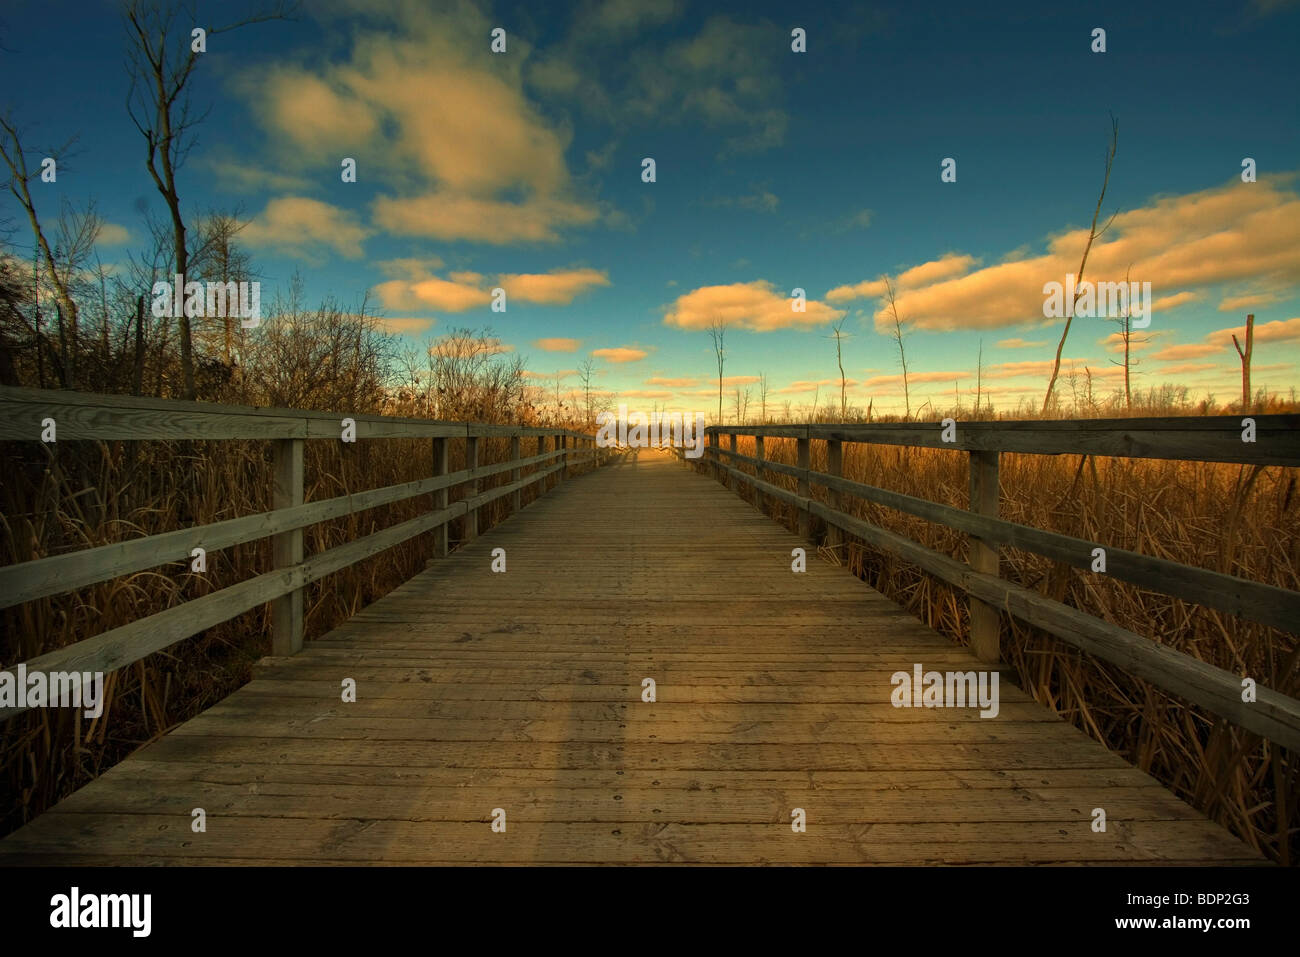 A wooden jetty passing between reed beds under a blue sky - Stock Image